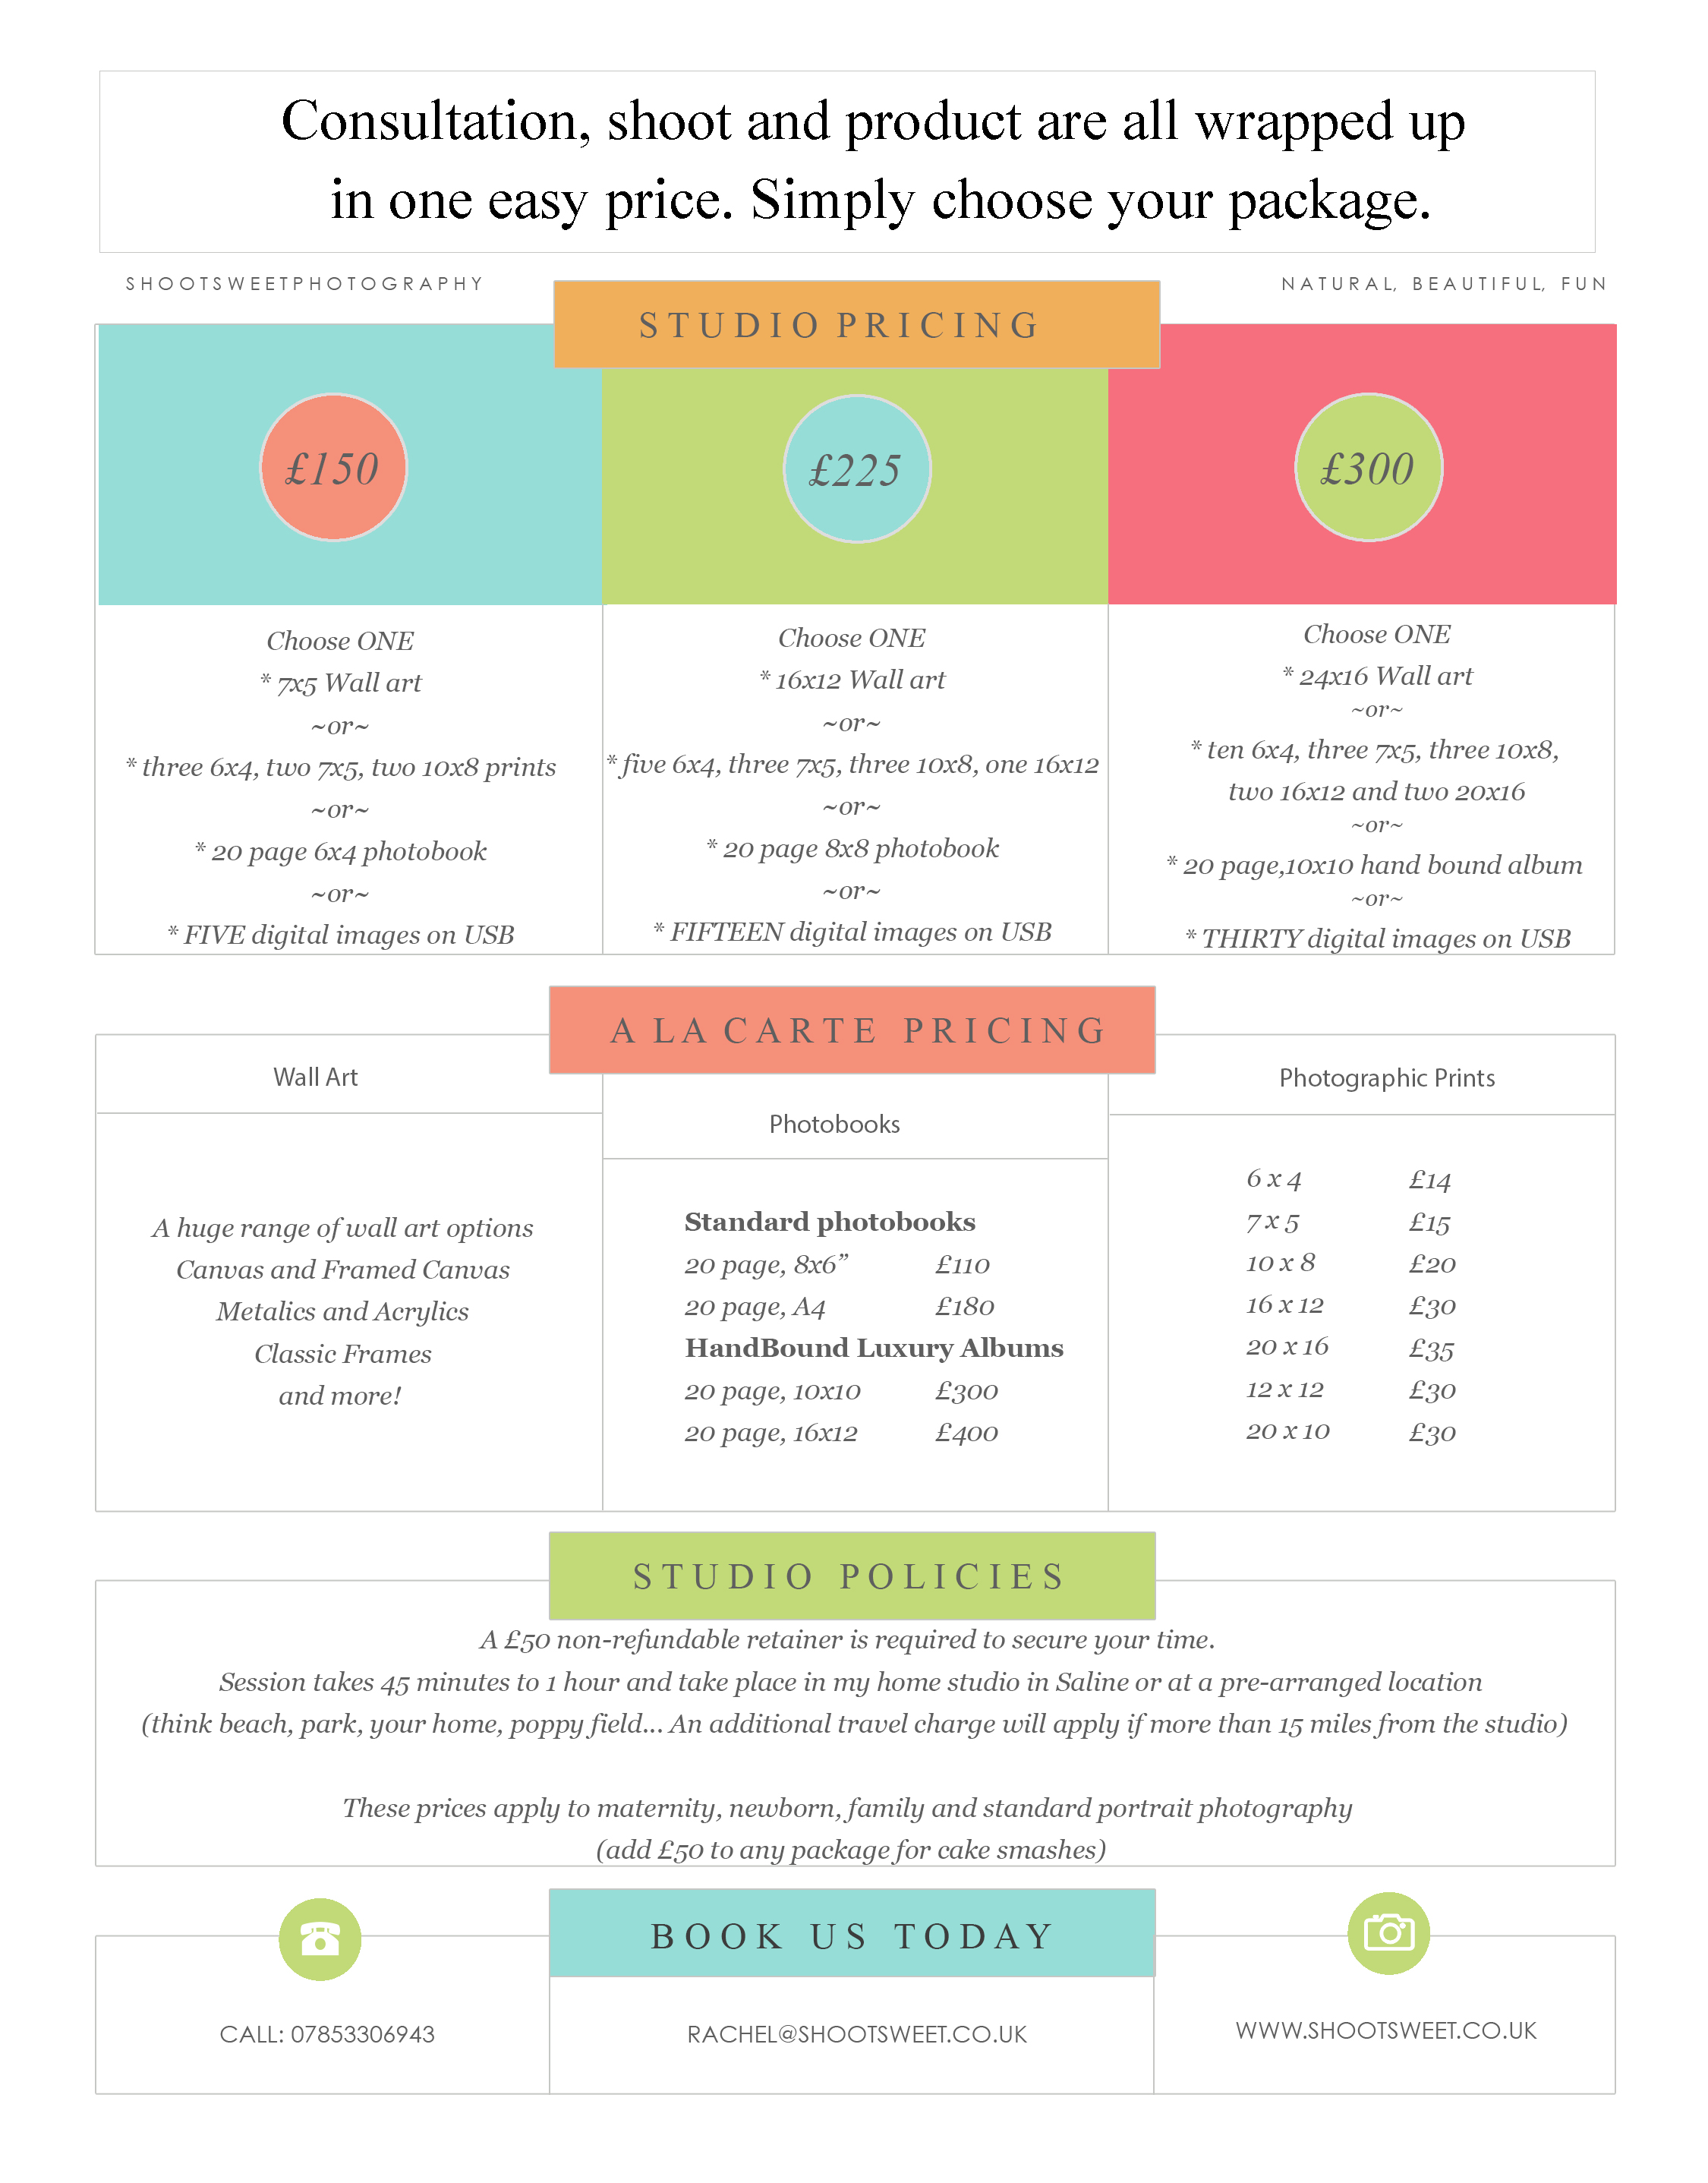 the portrait price list. Packages from £150 to £300